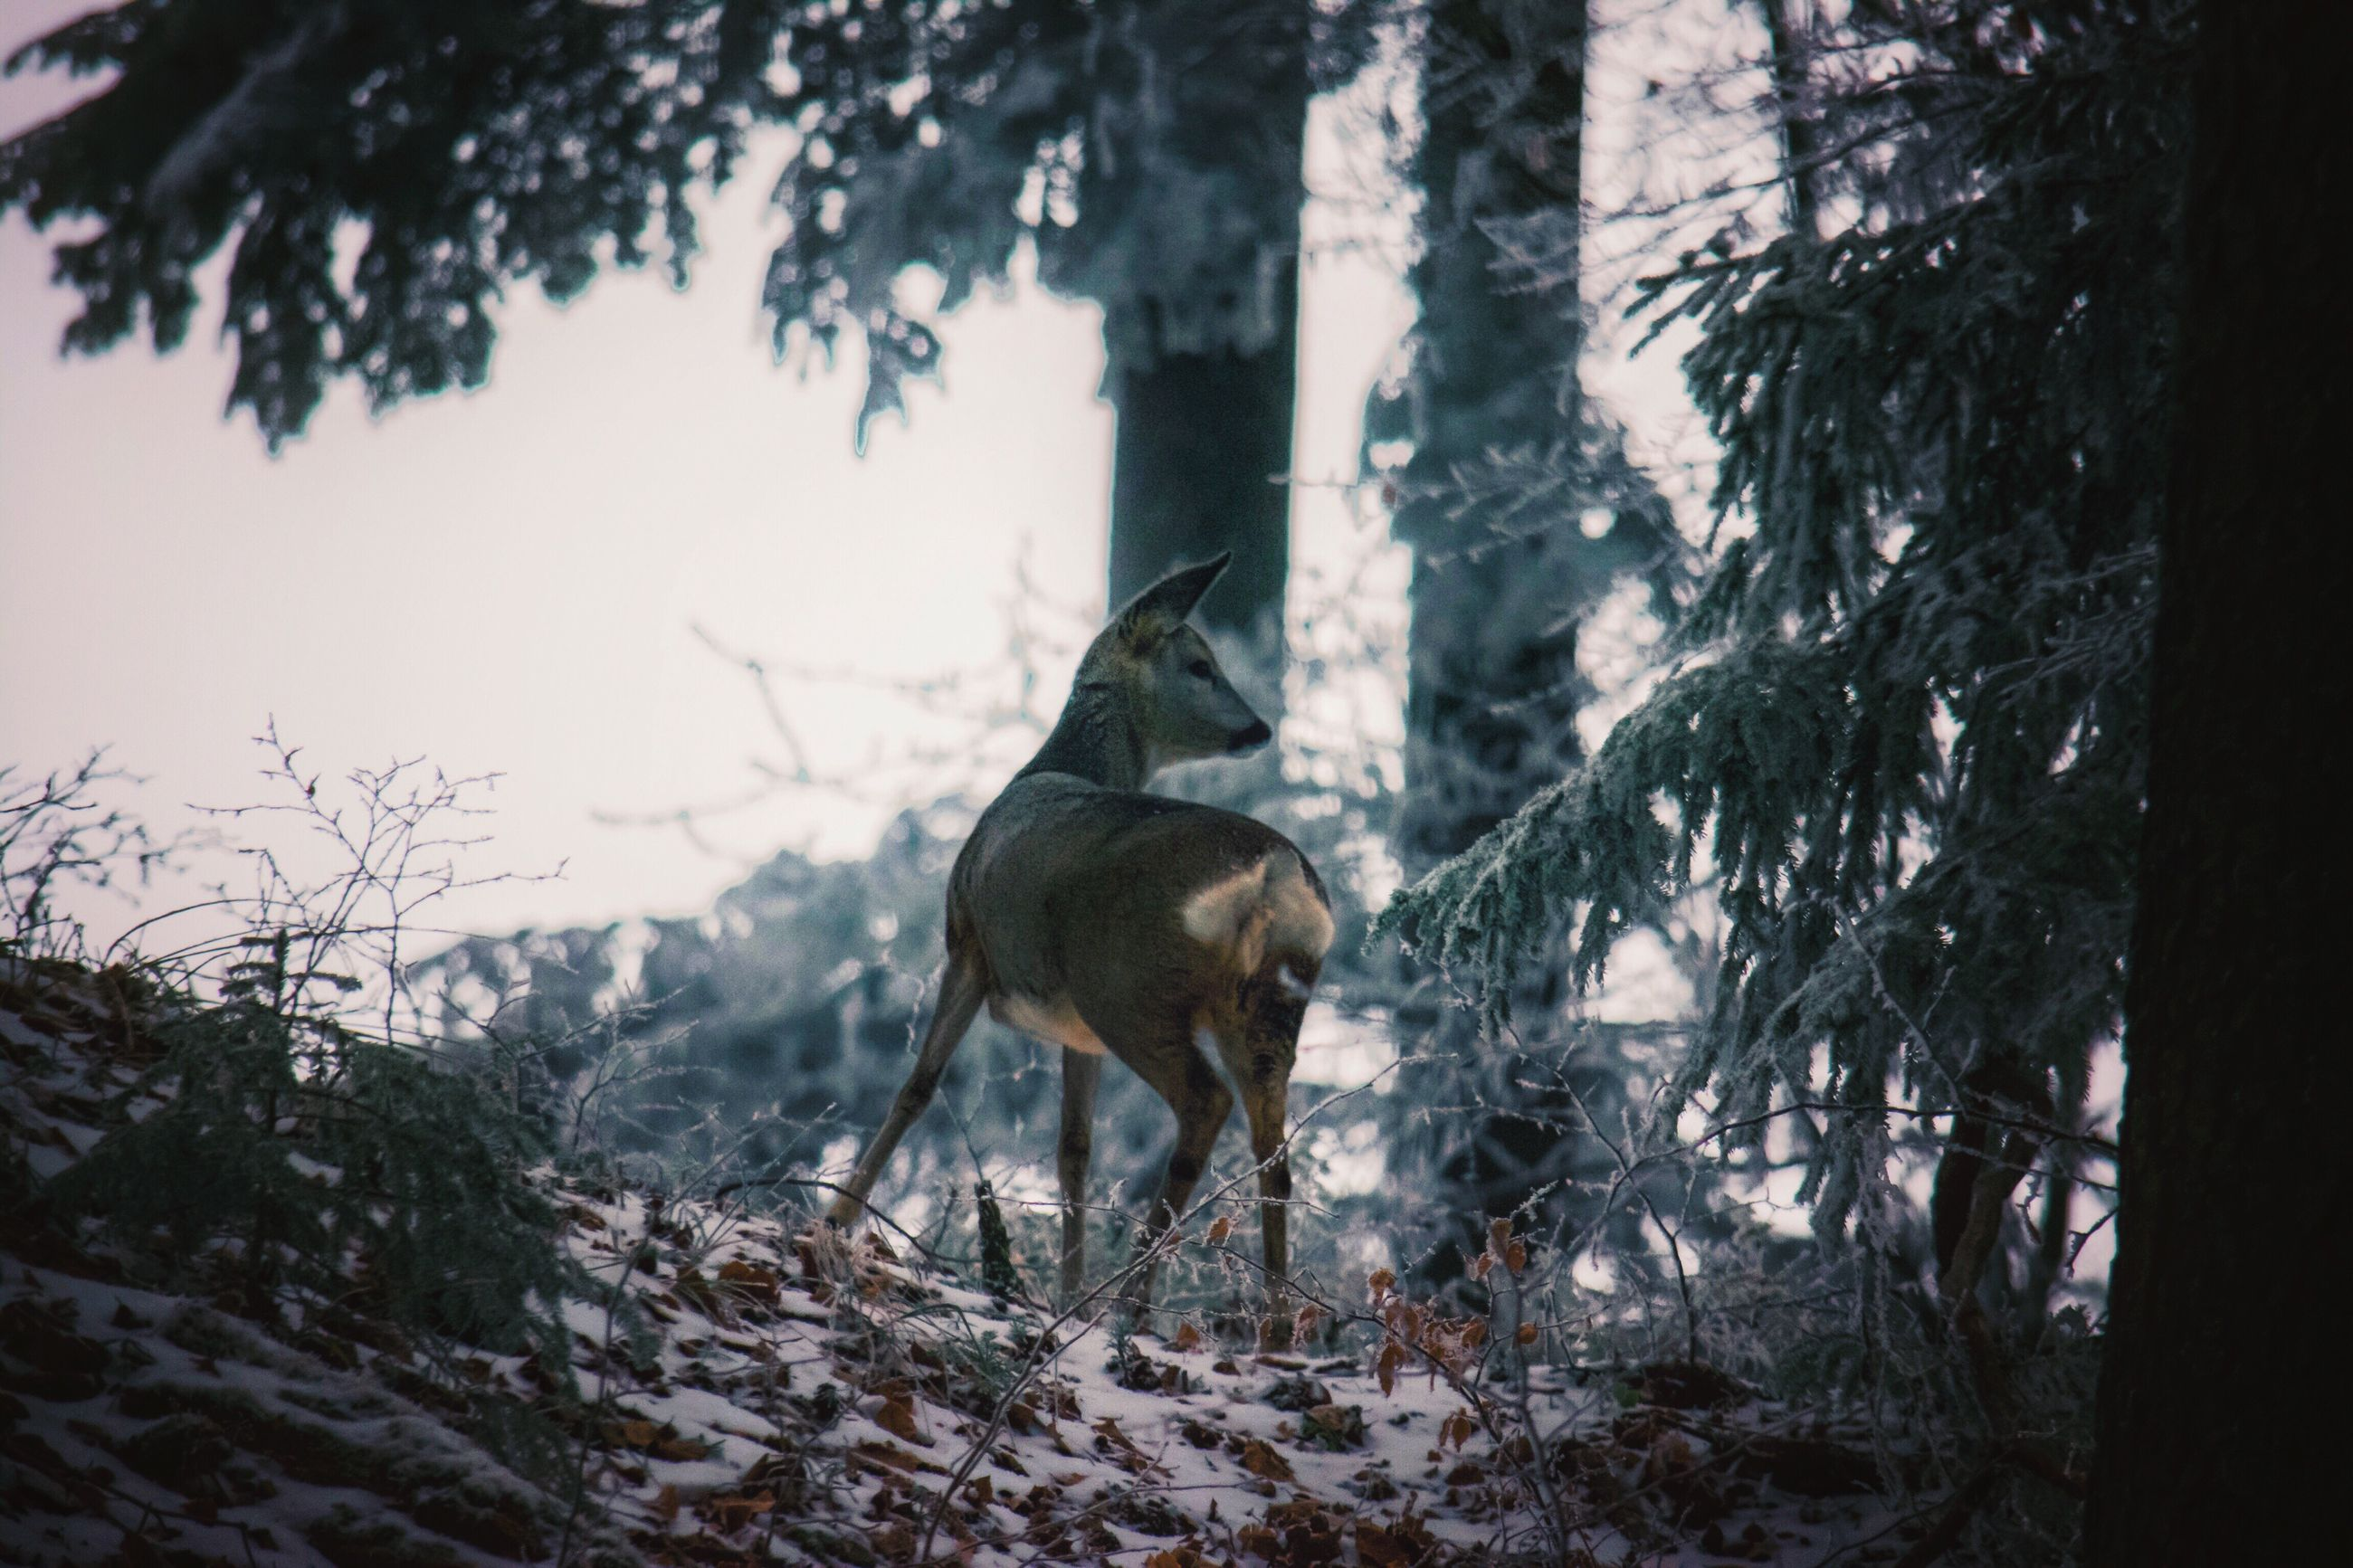 tree, animal themes, nature, one animal, mammal, winter, no people, snow, outdoors, tree trunk, livestock, bird, field, domestic animals, day, cold temperature, animals in the wild, landscape, sky, beauty in nature, branch, moose, antler